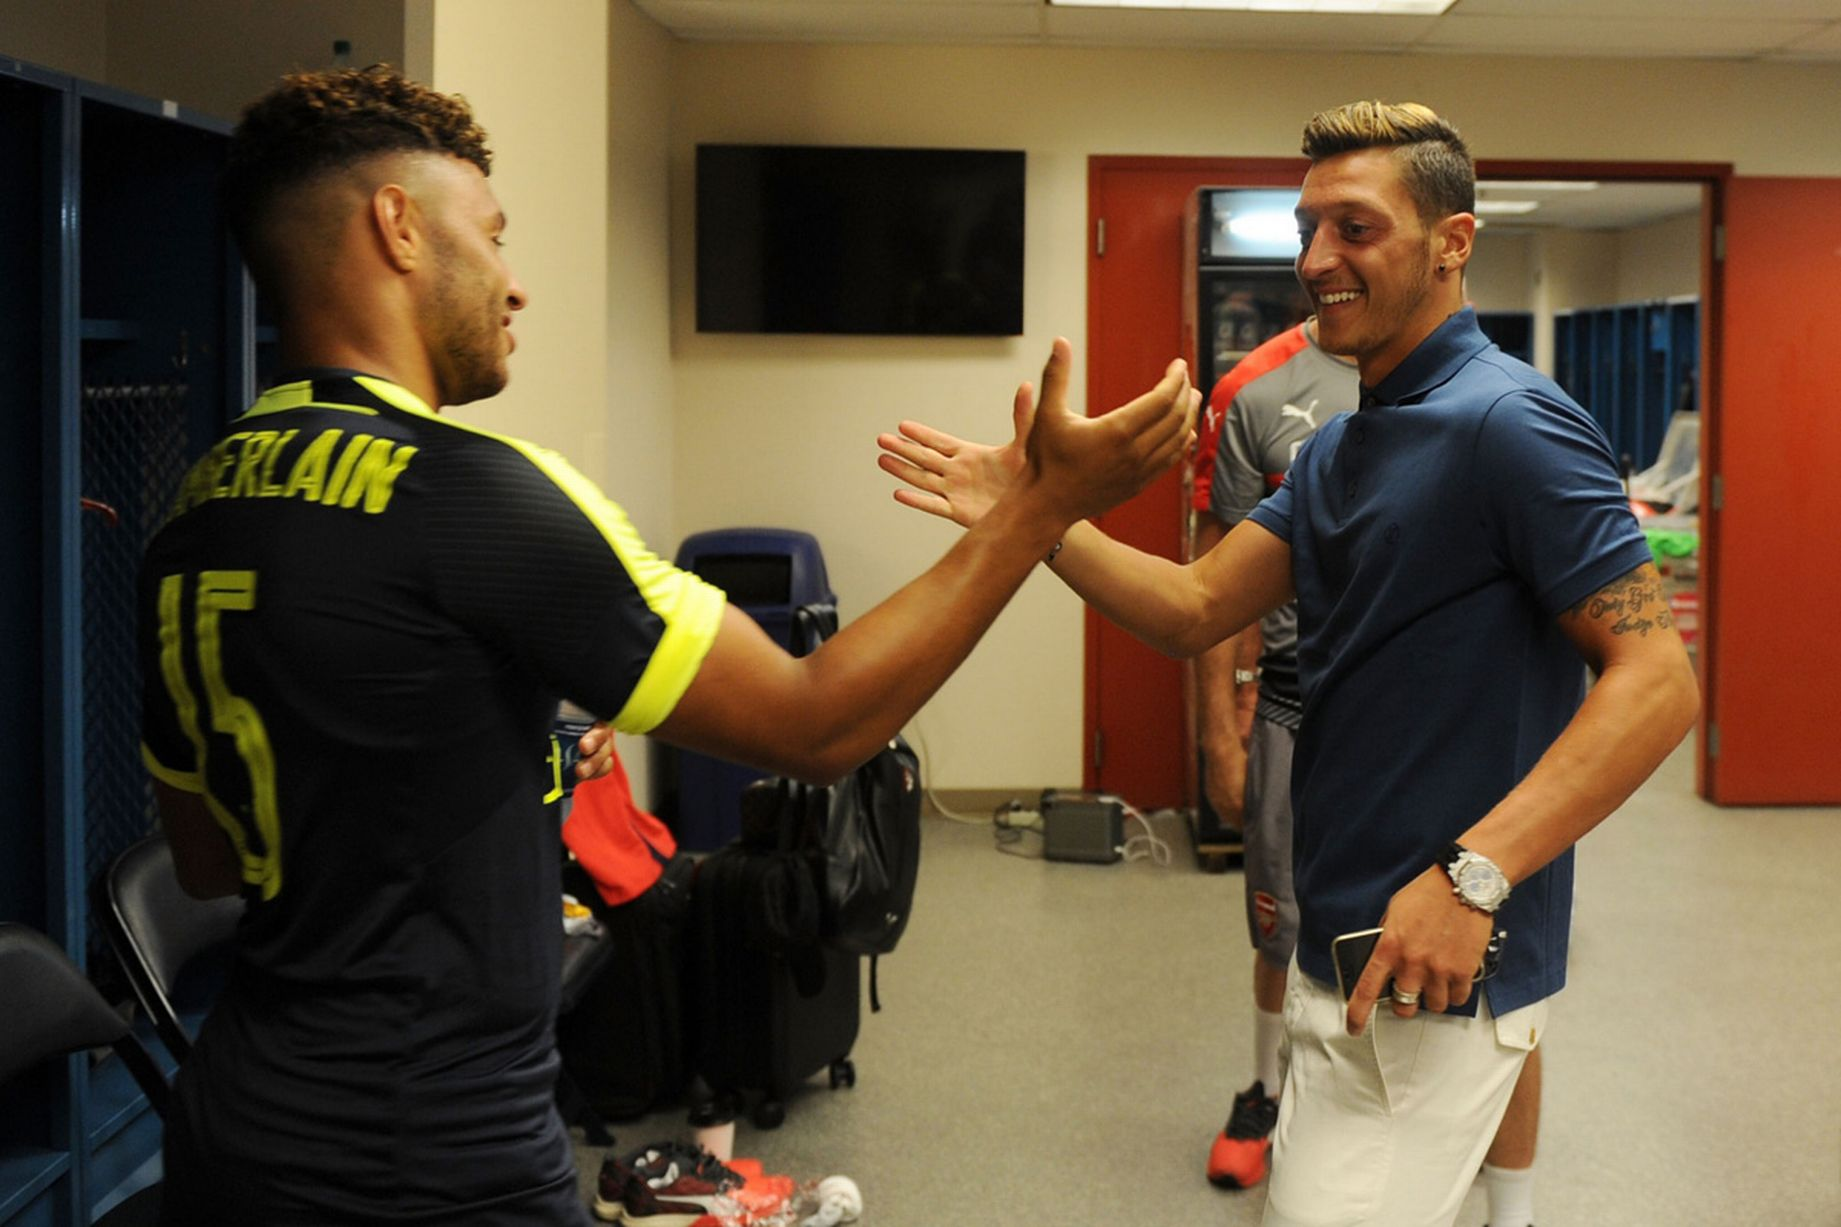 Alex Oxlade-Chamberlain and Mesut Ozil